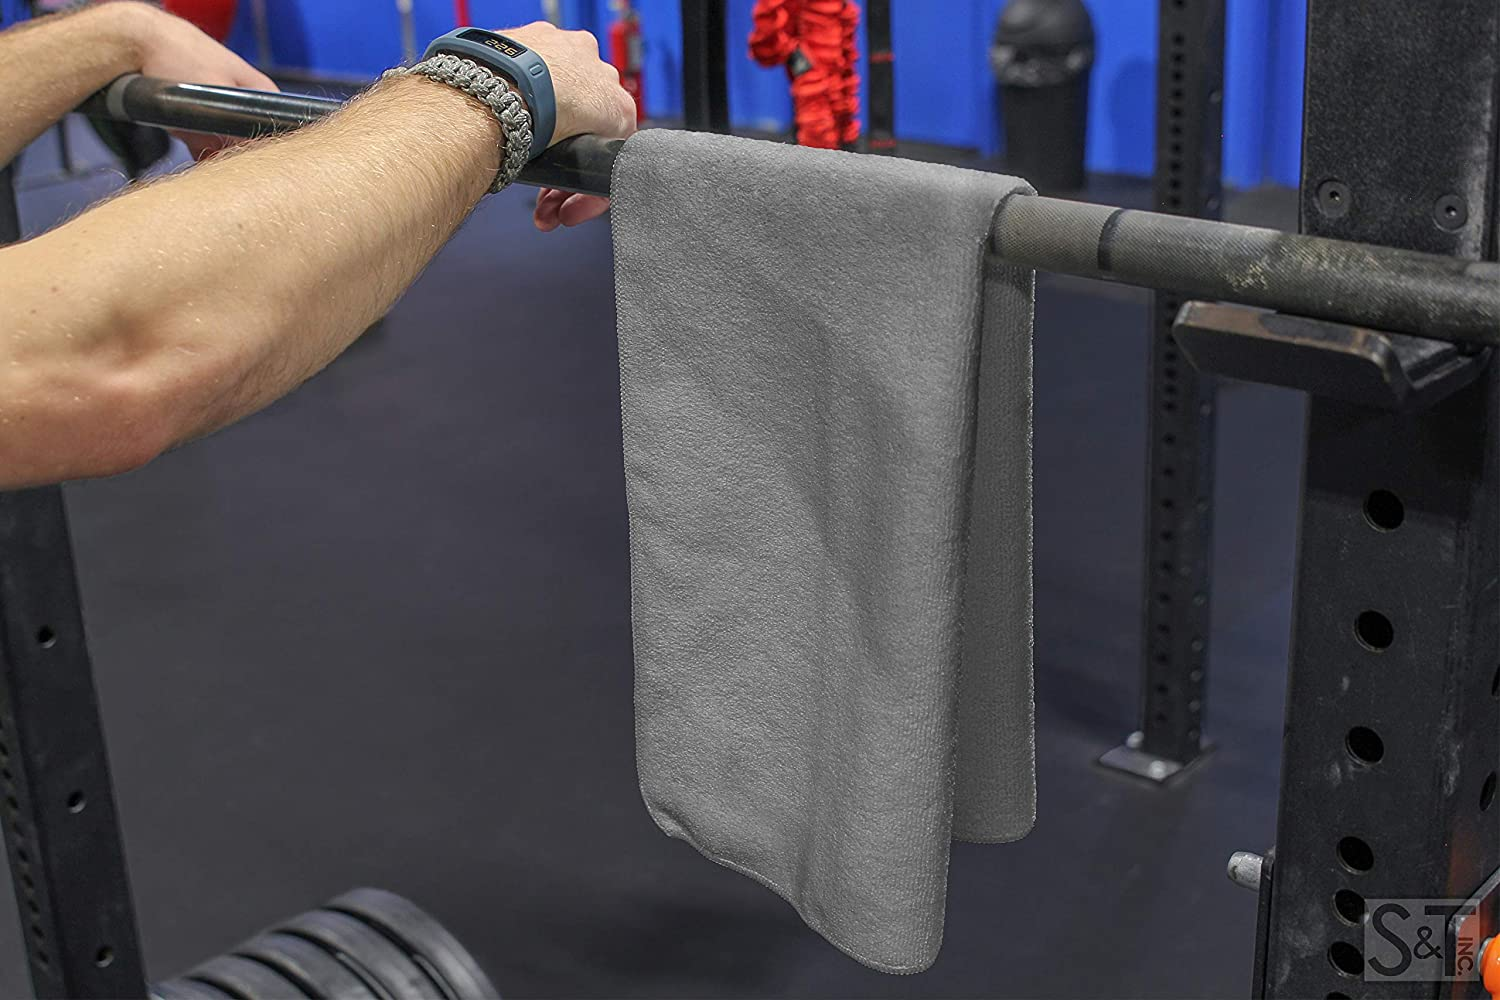 Microfiber Fitness Exercise Gym Towels